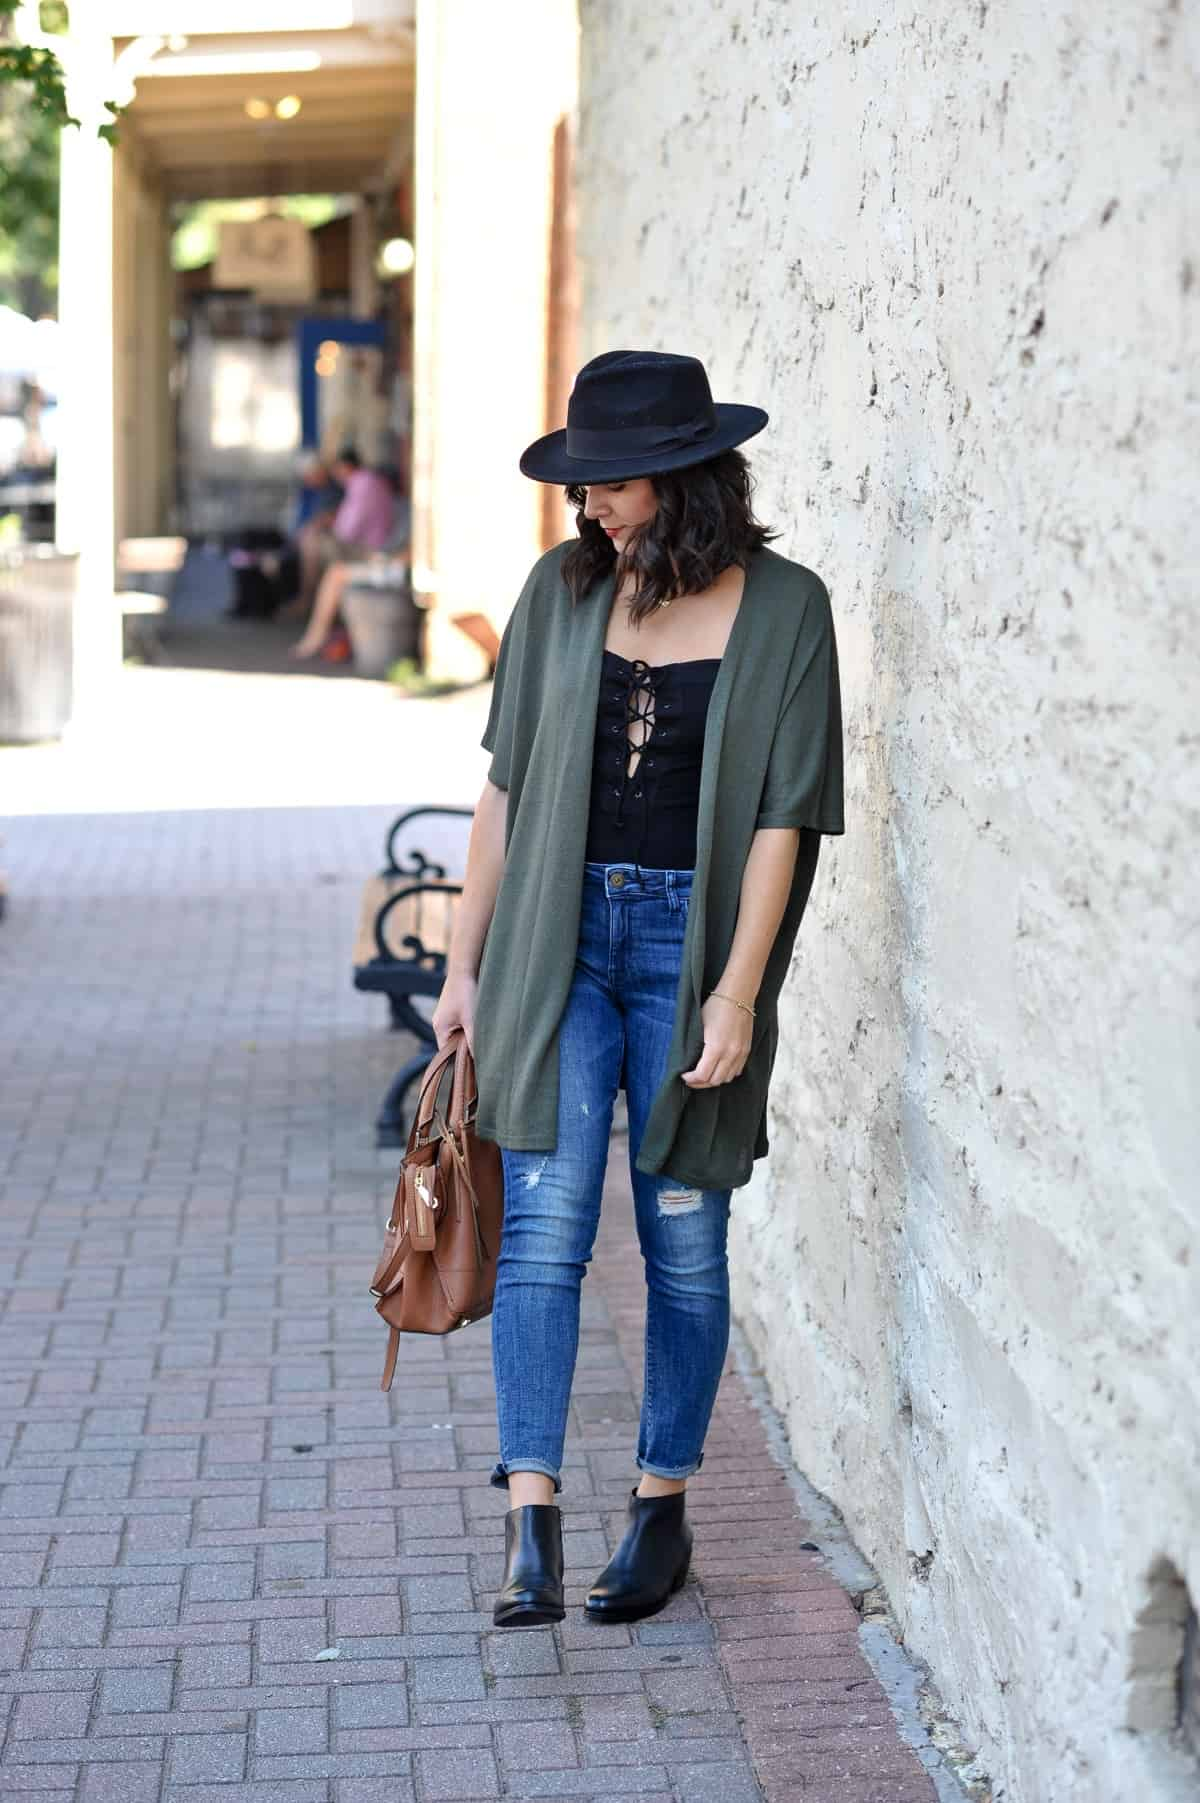 Clarks Gelata Boot, flat boots for fall, fall outfit ideas - My Style Vita @mystylevita